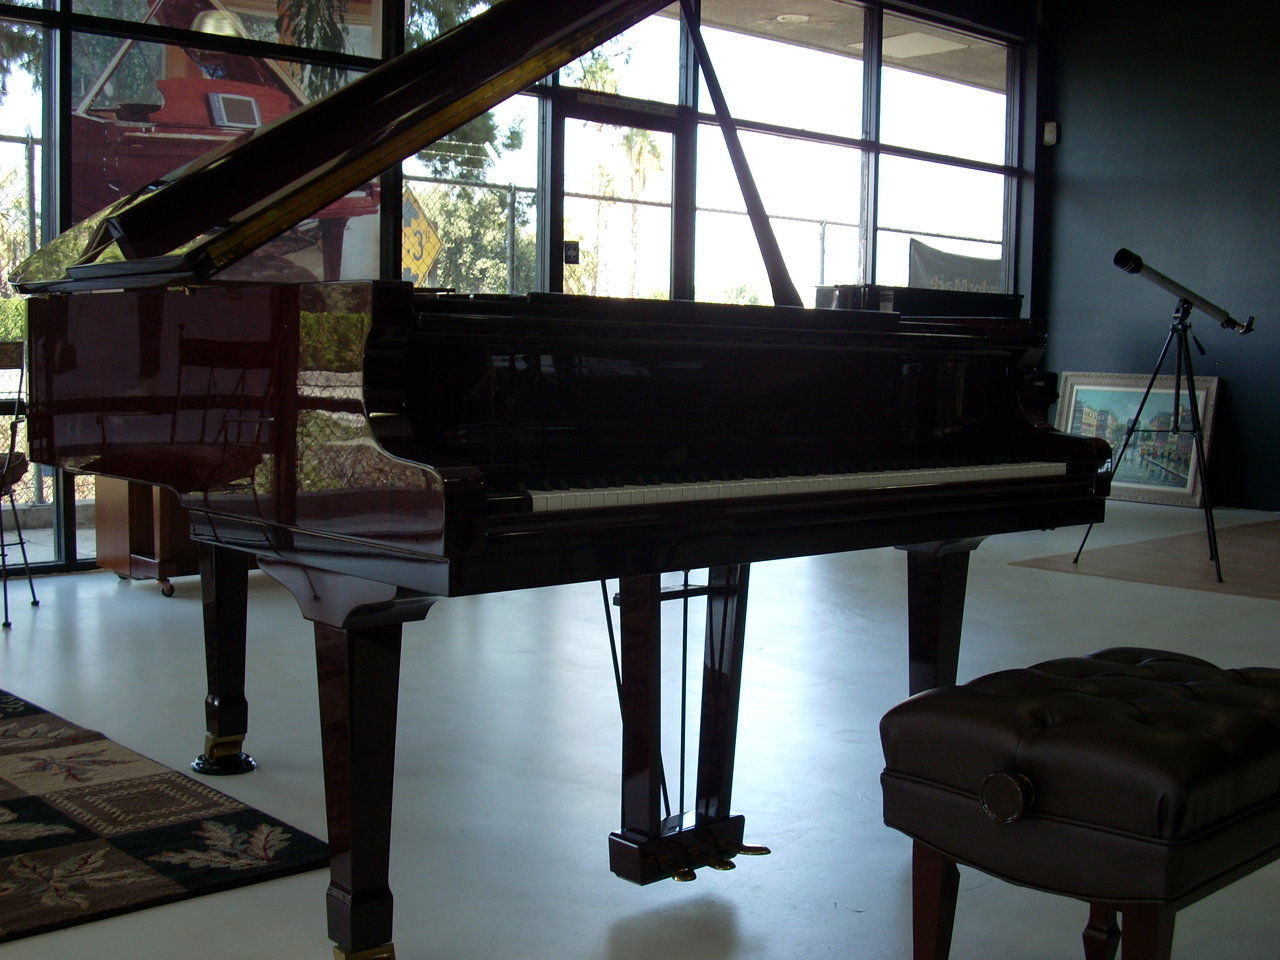 sorrento valley music pianos violins harp sheet music lessons san diego ca factory. Black Bedroom Furniture Sets. Home Design Ideas